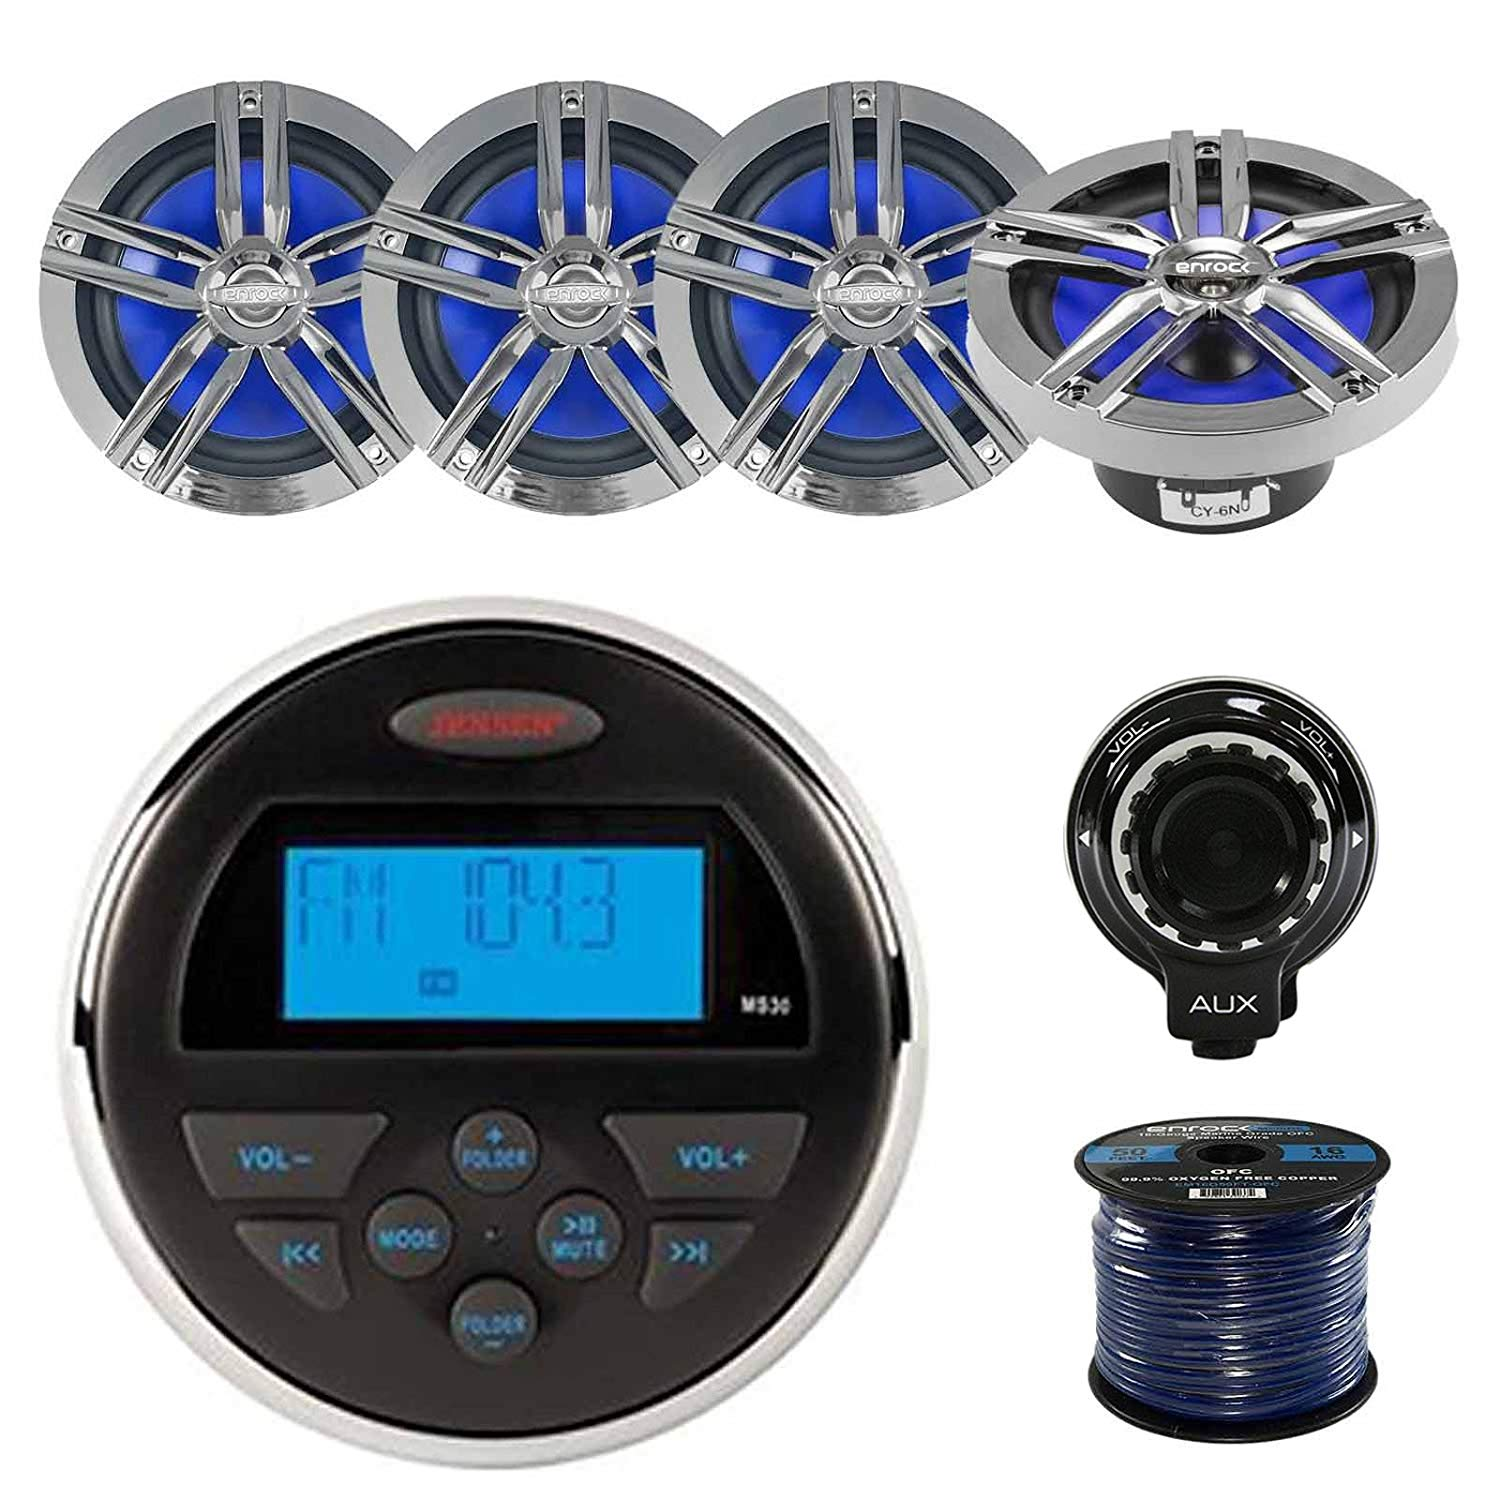 "JENSEN MS30 AM/FM/USB WP Marine Boat Stereo With Enrock Marine 2-Way 180W 6.5"" Charcoal Speakers (2-Pairs), Enrock Marine Grade 50ft 16-G SPKR Wire & Hifonics Wired BT Preamp Controller"